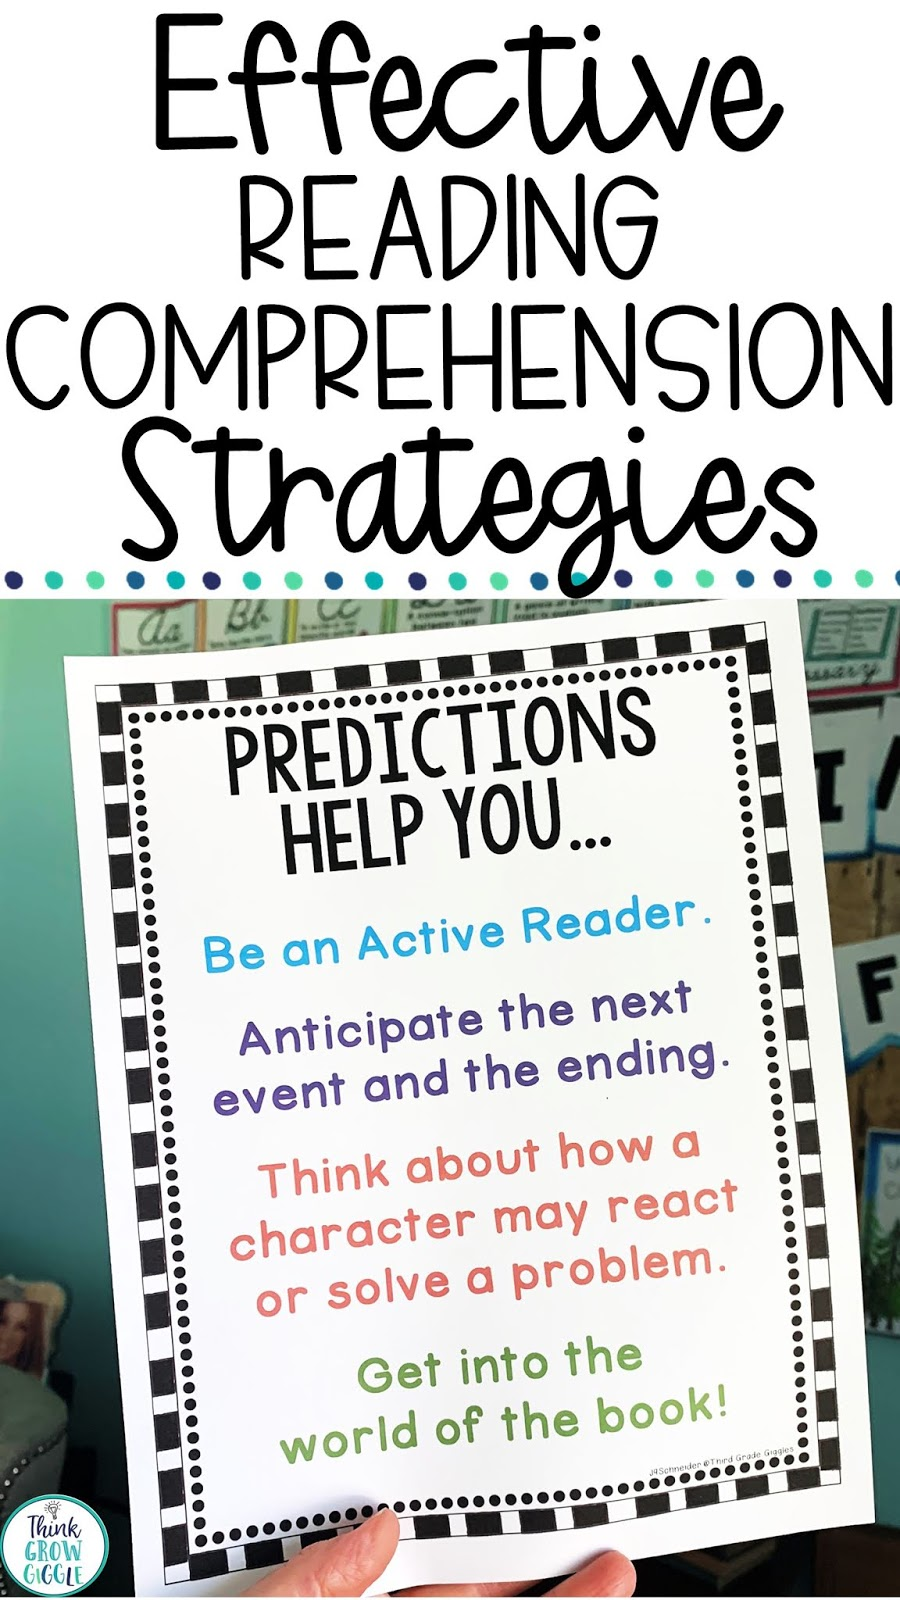 - What Are Effective Reading Comprehension Strategies? - Think Grow